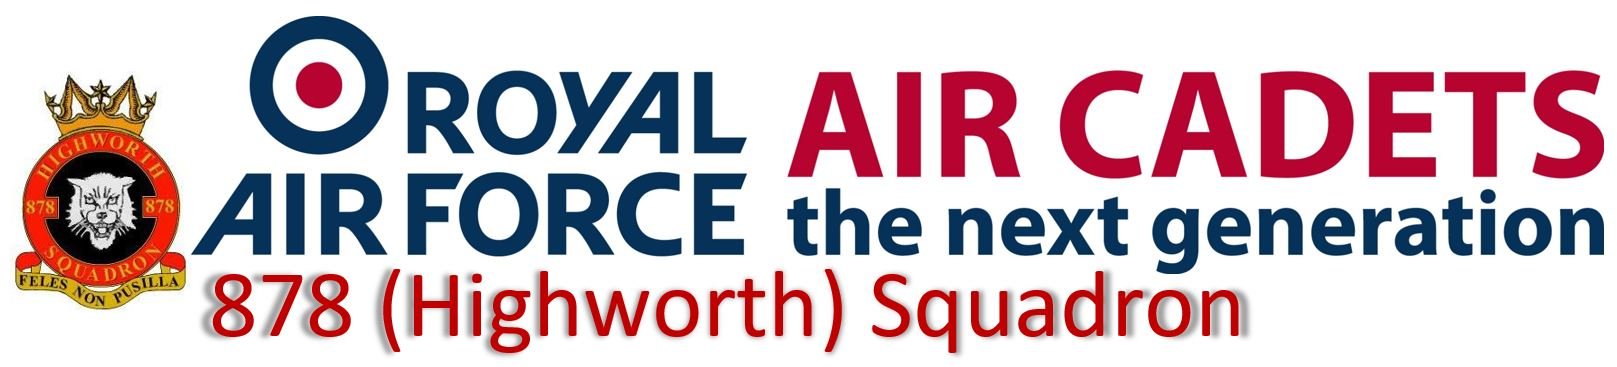 878 (Highworth) Squadron Royal Air Force Air Cadets Logo